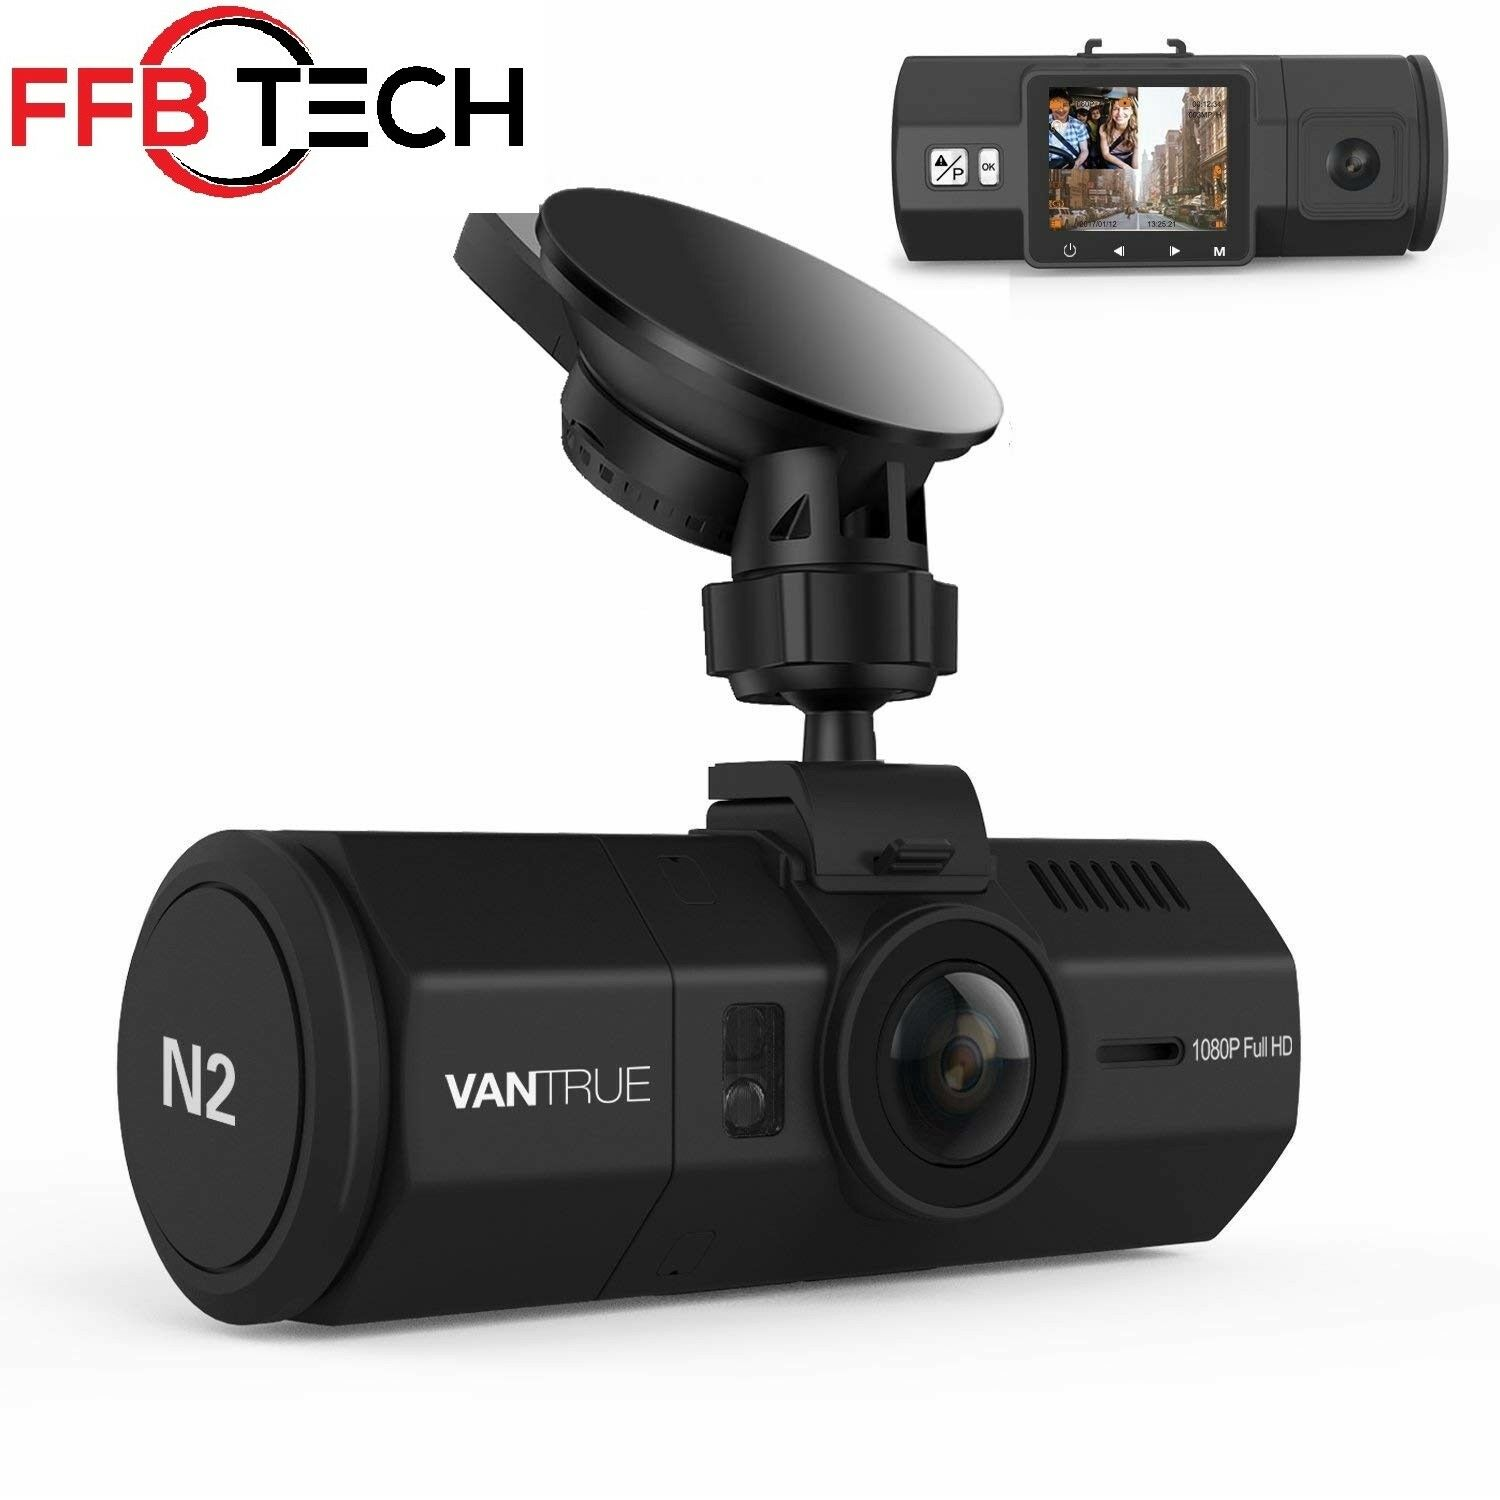 s-l1600 Vantrue N2 Dual Dash Cam-1080P FHD +HDR Front and Back Wide Angle Dual Lens